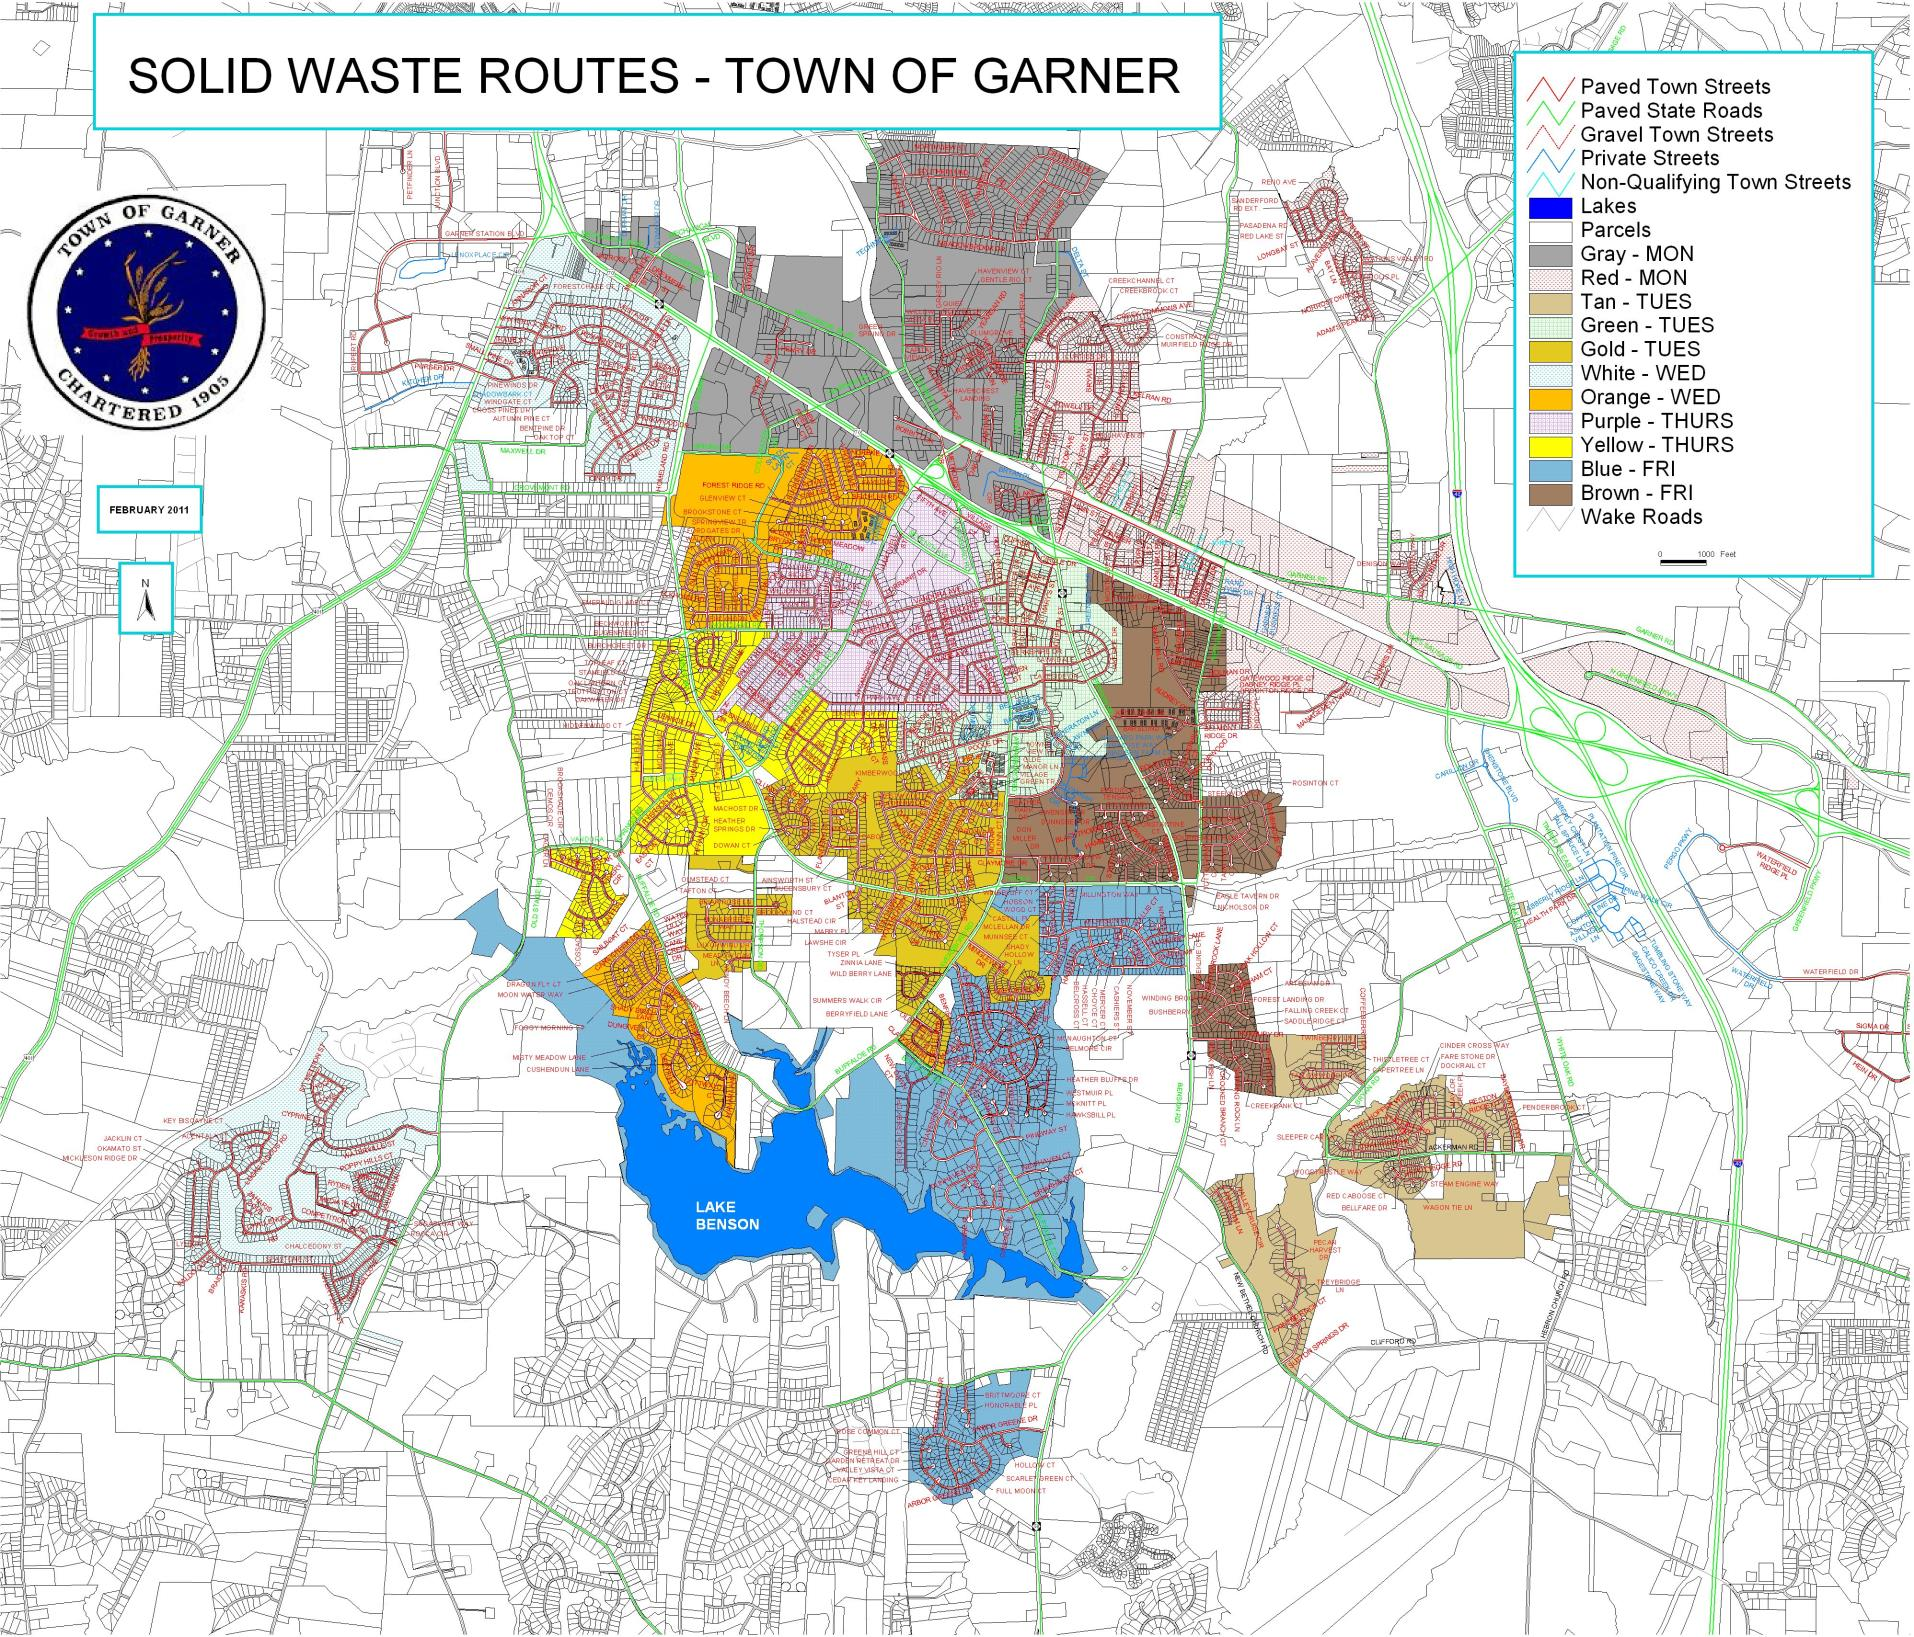 Utilities and Solid Waste Services | Town of Garner, NC on garner north carolina weather, state of n carolina map, garner north carolina maurice dixon, garner nc, garner virginia map, garner raleigh map, garner north carolina newspaper,